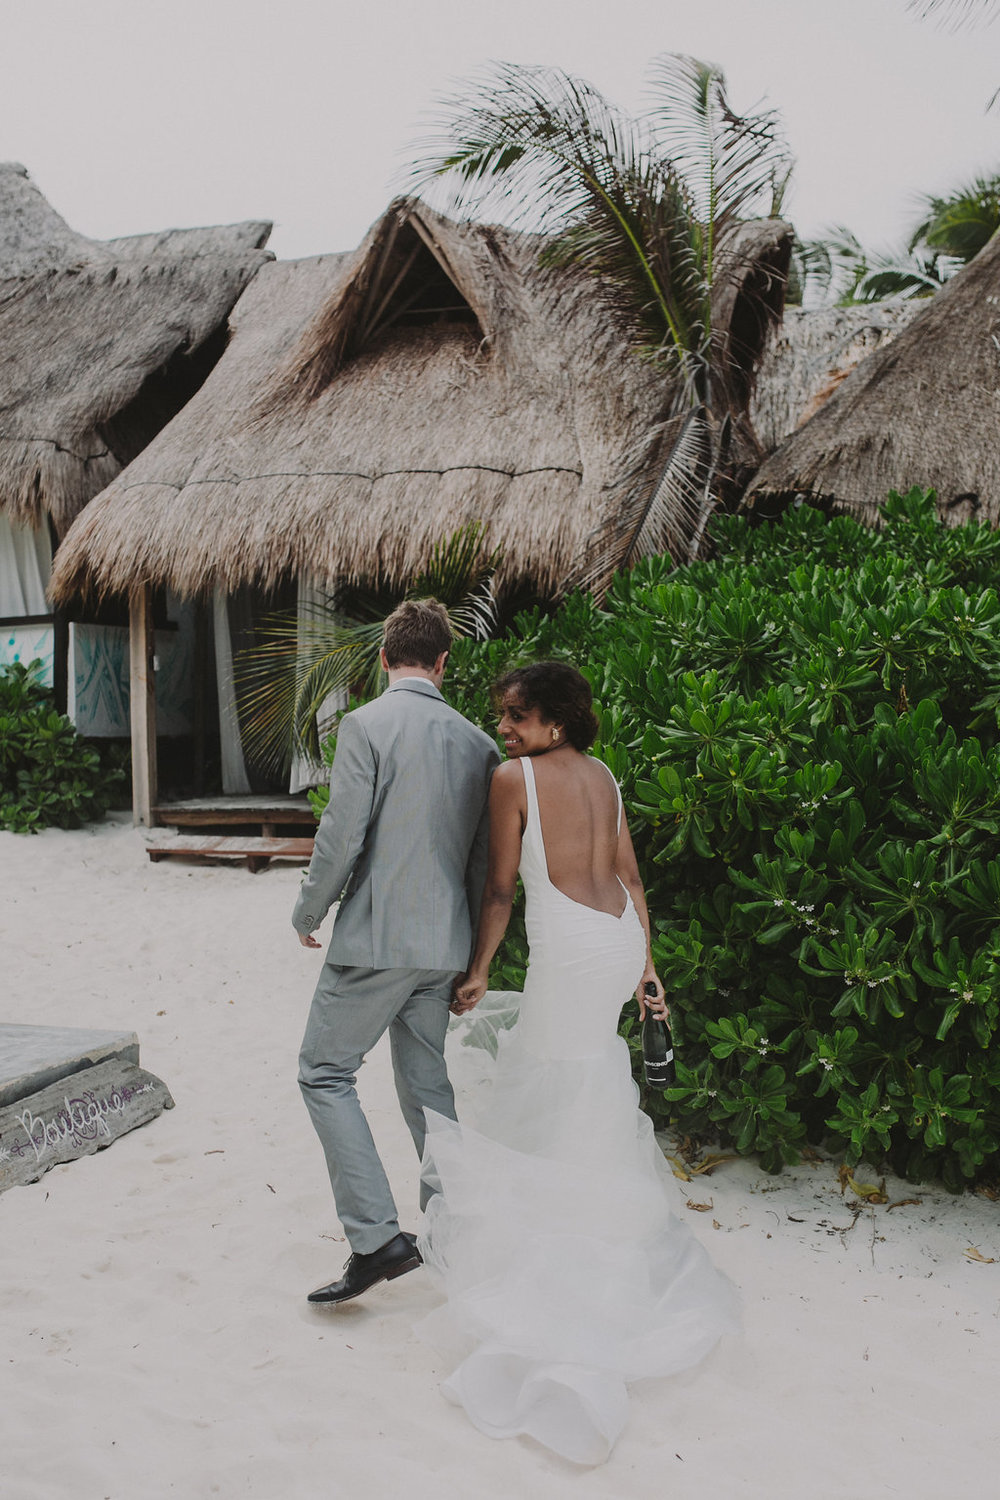 casa_violeta_wedding_tulum_photography_planner_rock_and_roll_chellisemichaelphotography_kerrybeachevents-8397.jpg